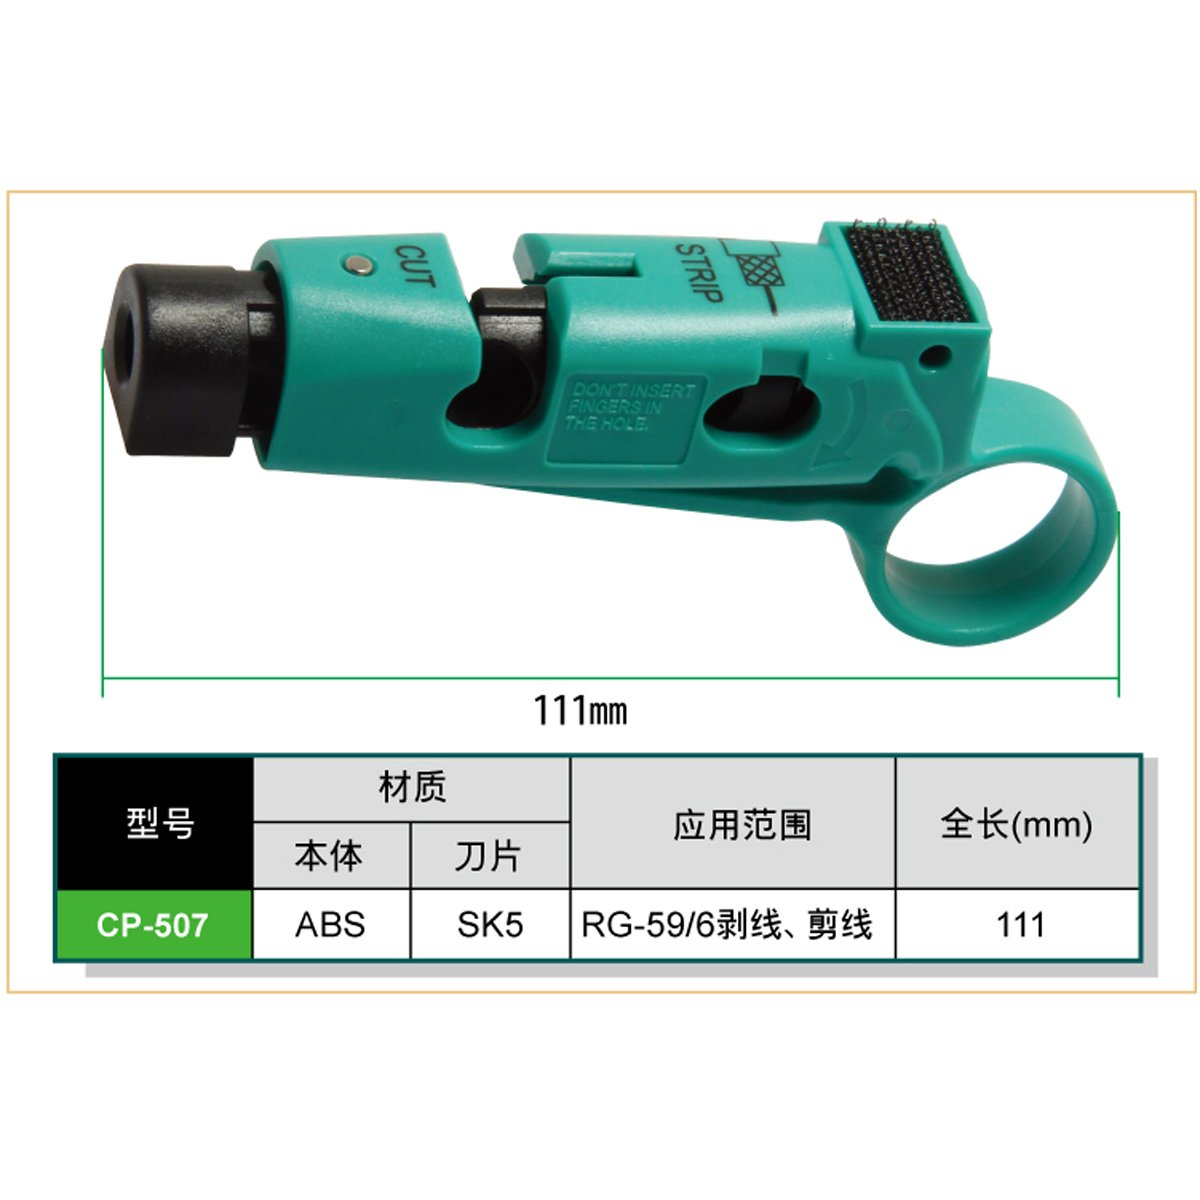 CP-507 Coaxial Cable Stripper/Cutter for RG-59, RG-6 Coaxial Cable Wire Stripper Tool 111mm Length by Tpmall (Image #6)